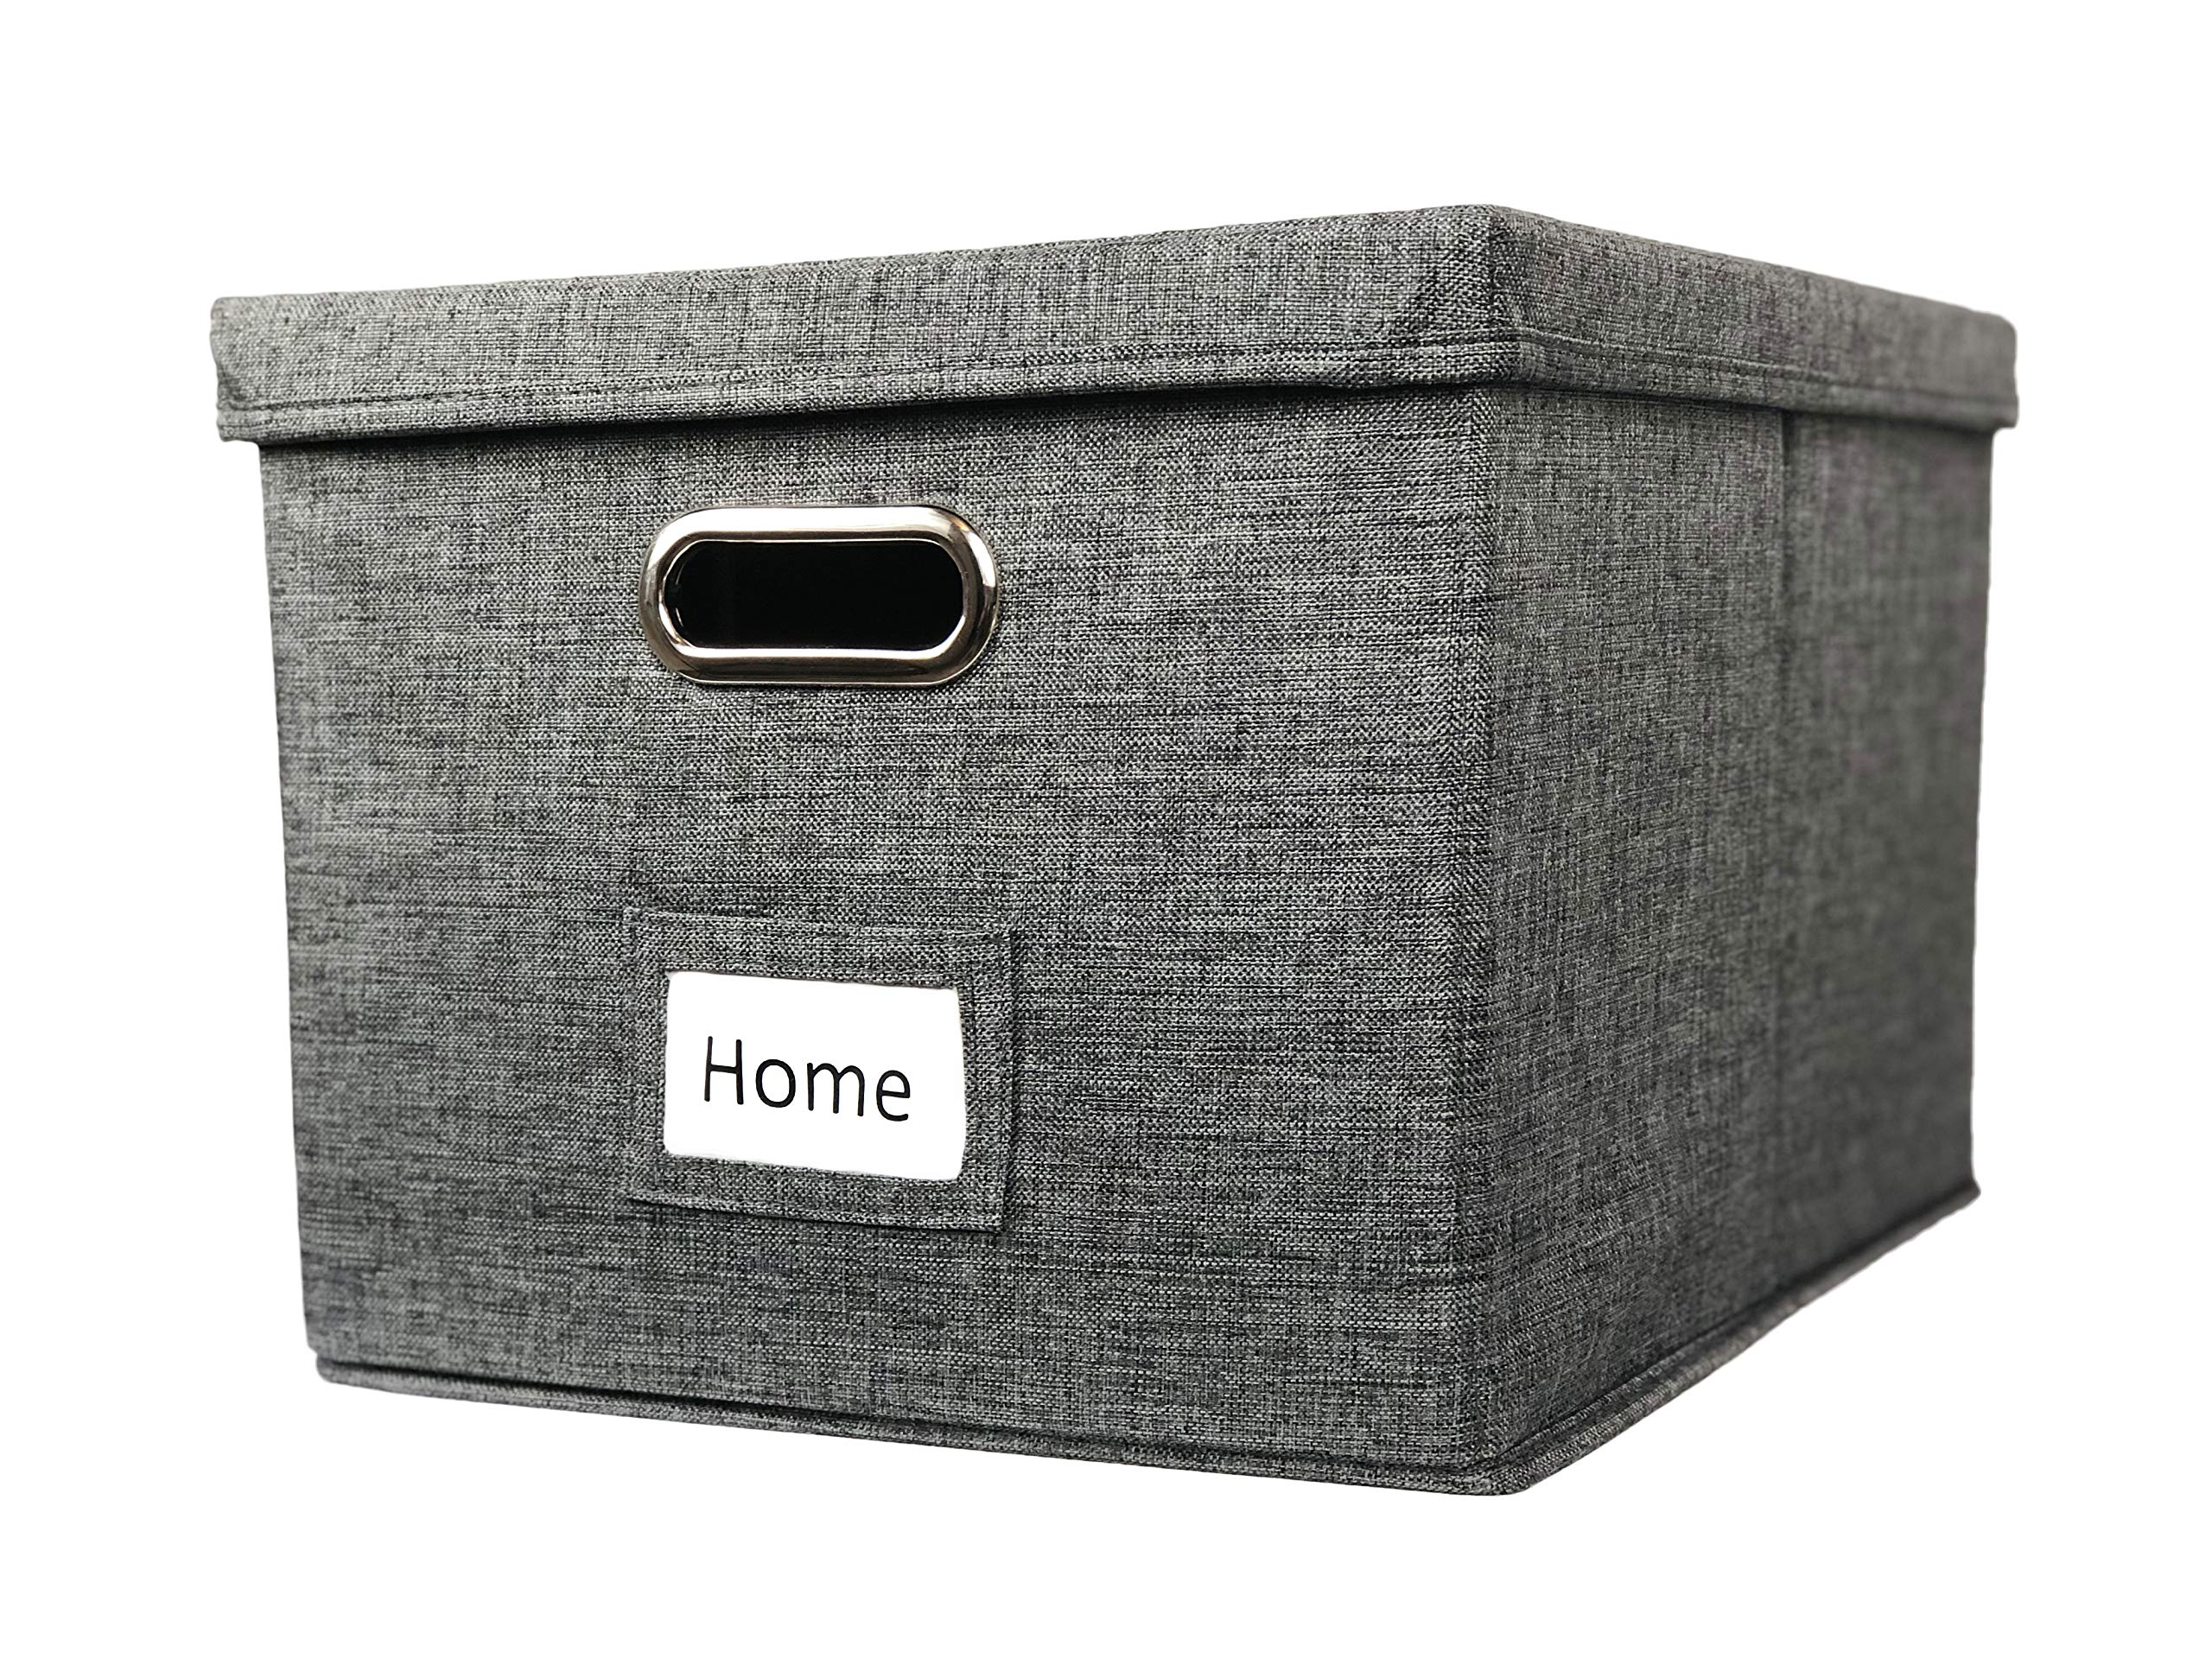 Viluh Collapsible File Box Storage Organizer | Decorative Linen Filing & Office Bin | Letter/Legal | Hanging Folders | Dog Toy Basket | Charcoal Gray |